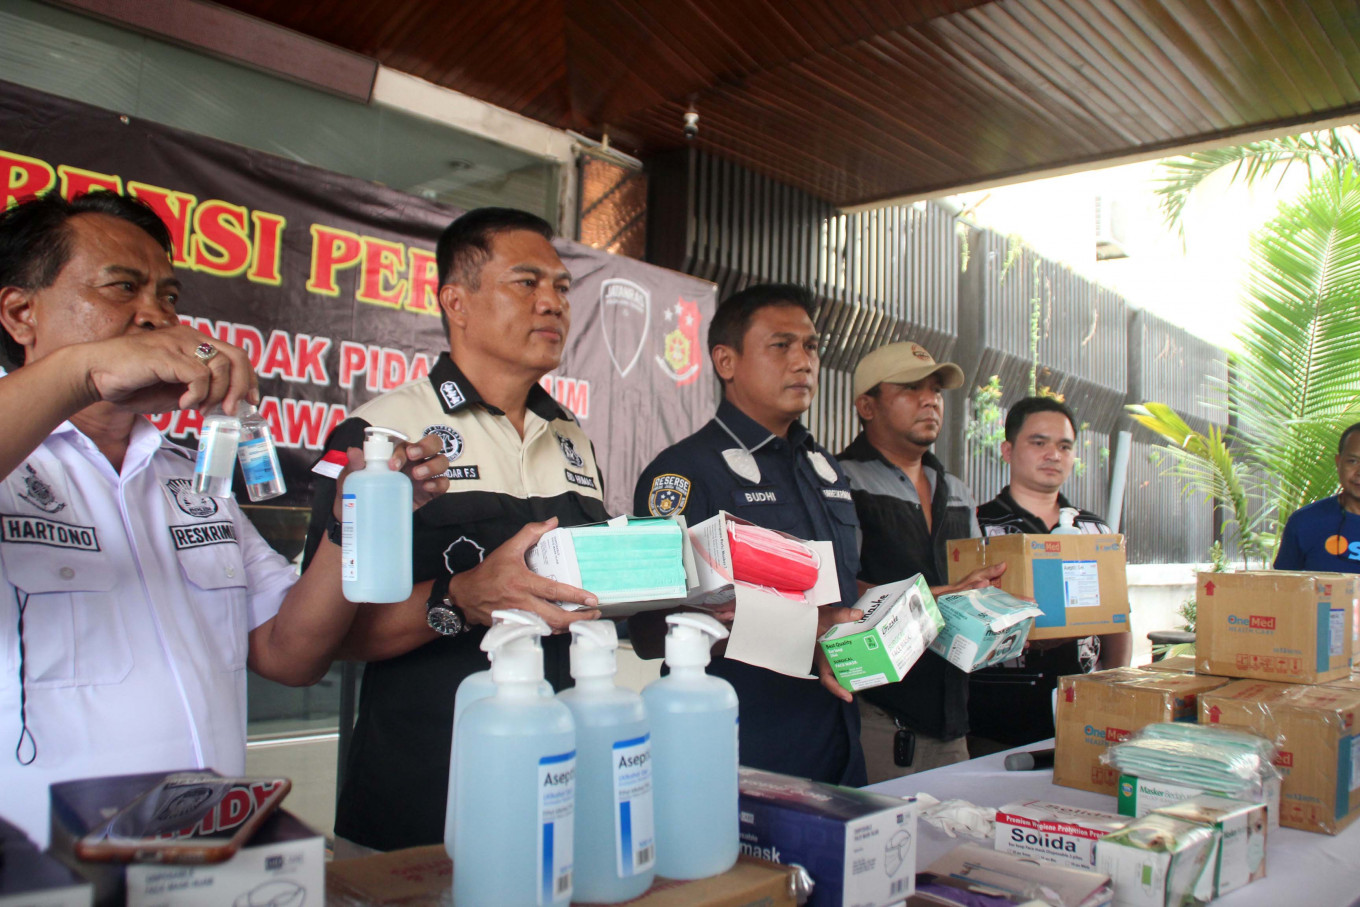 Police arrest three in Central Java for allegedly reselling masks at 900% markup